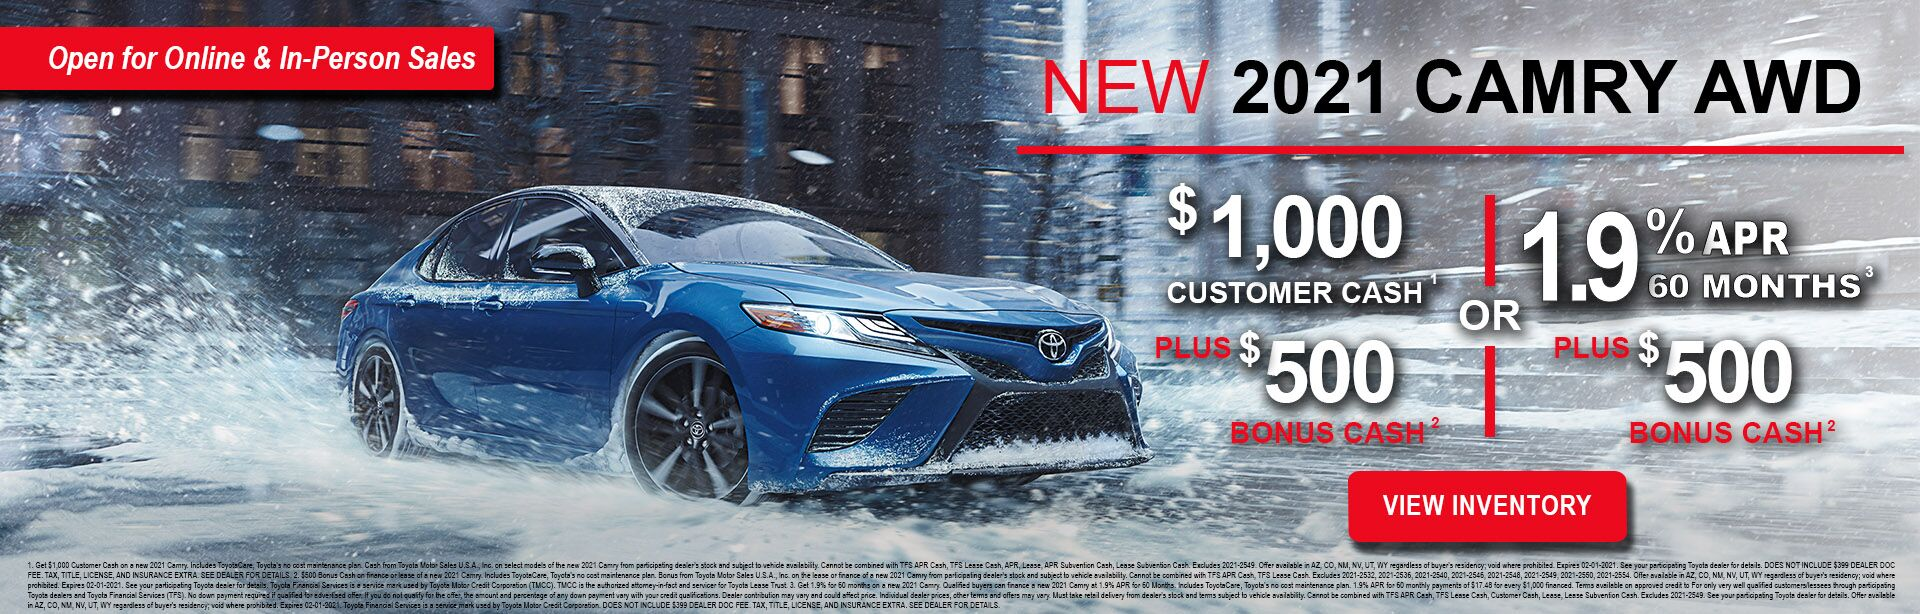 1-5-21 Camry offer